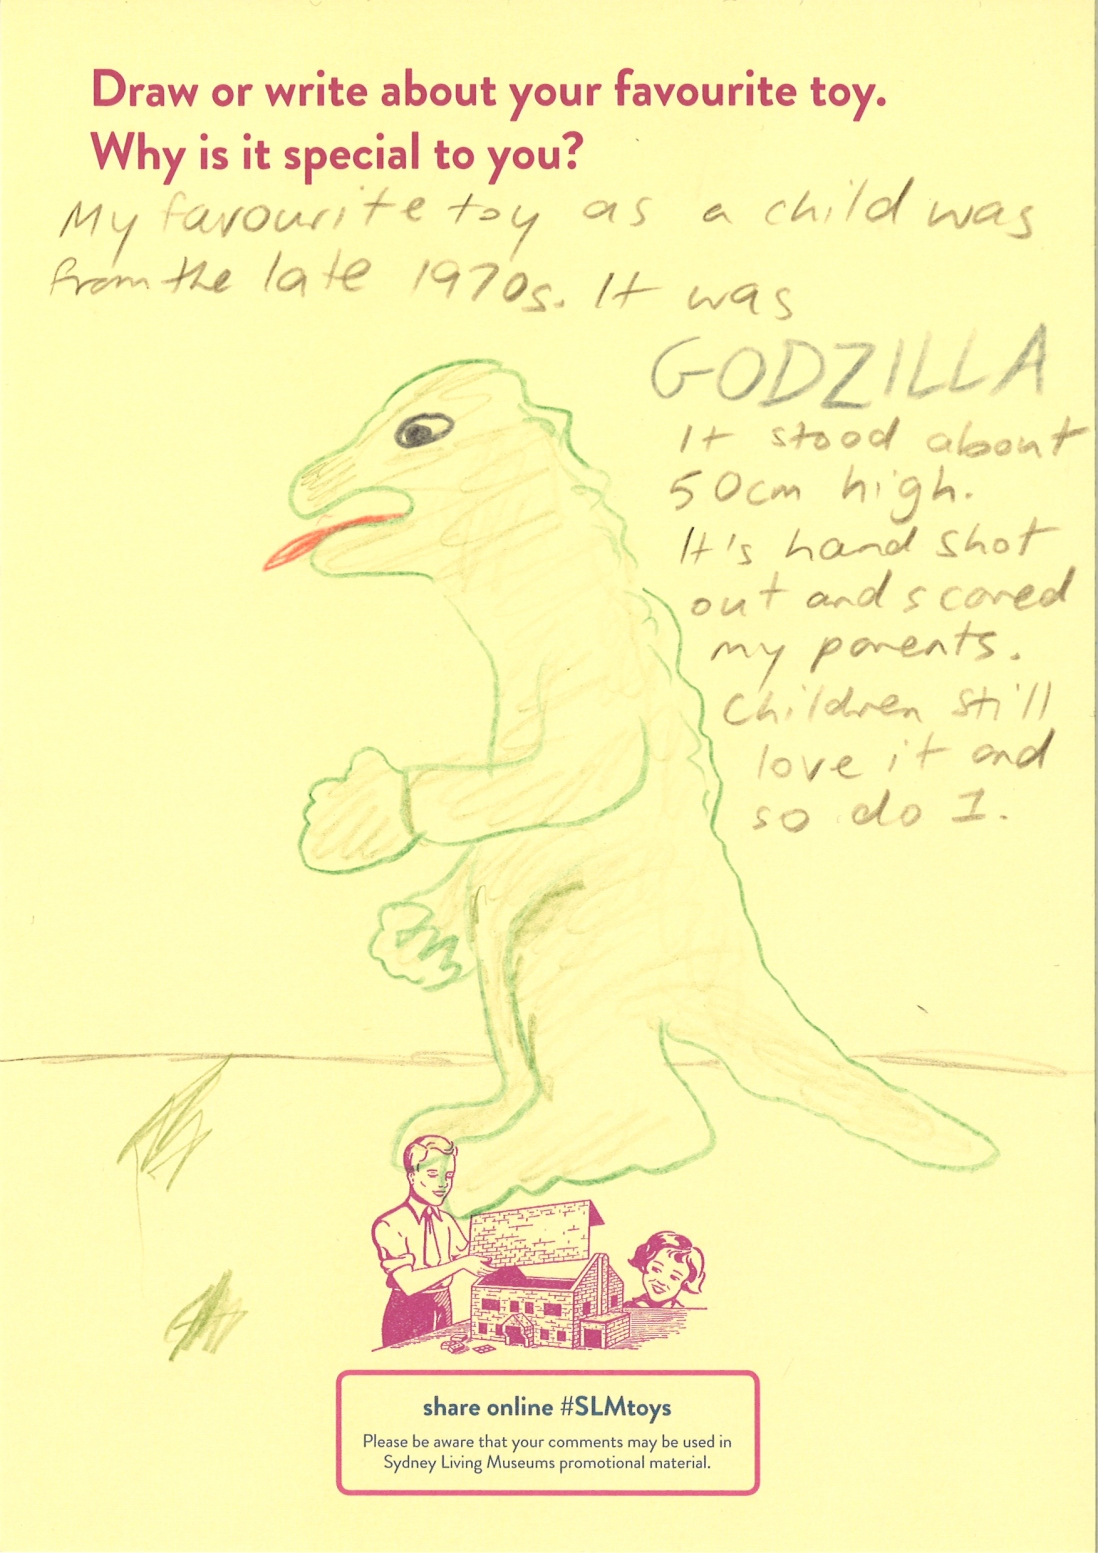 Drawing of Godzilla toy